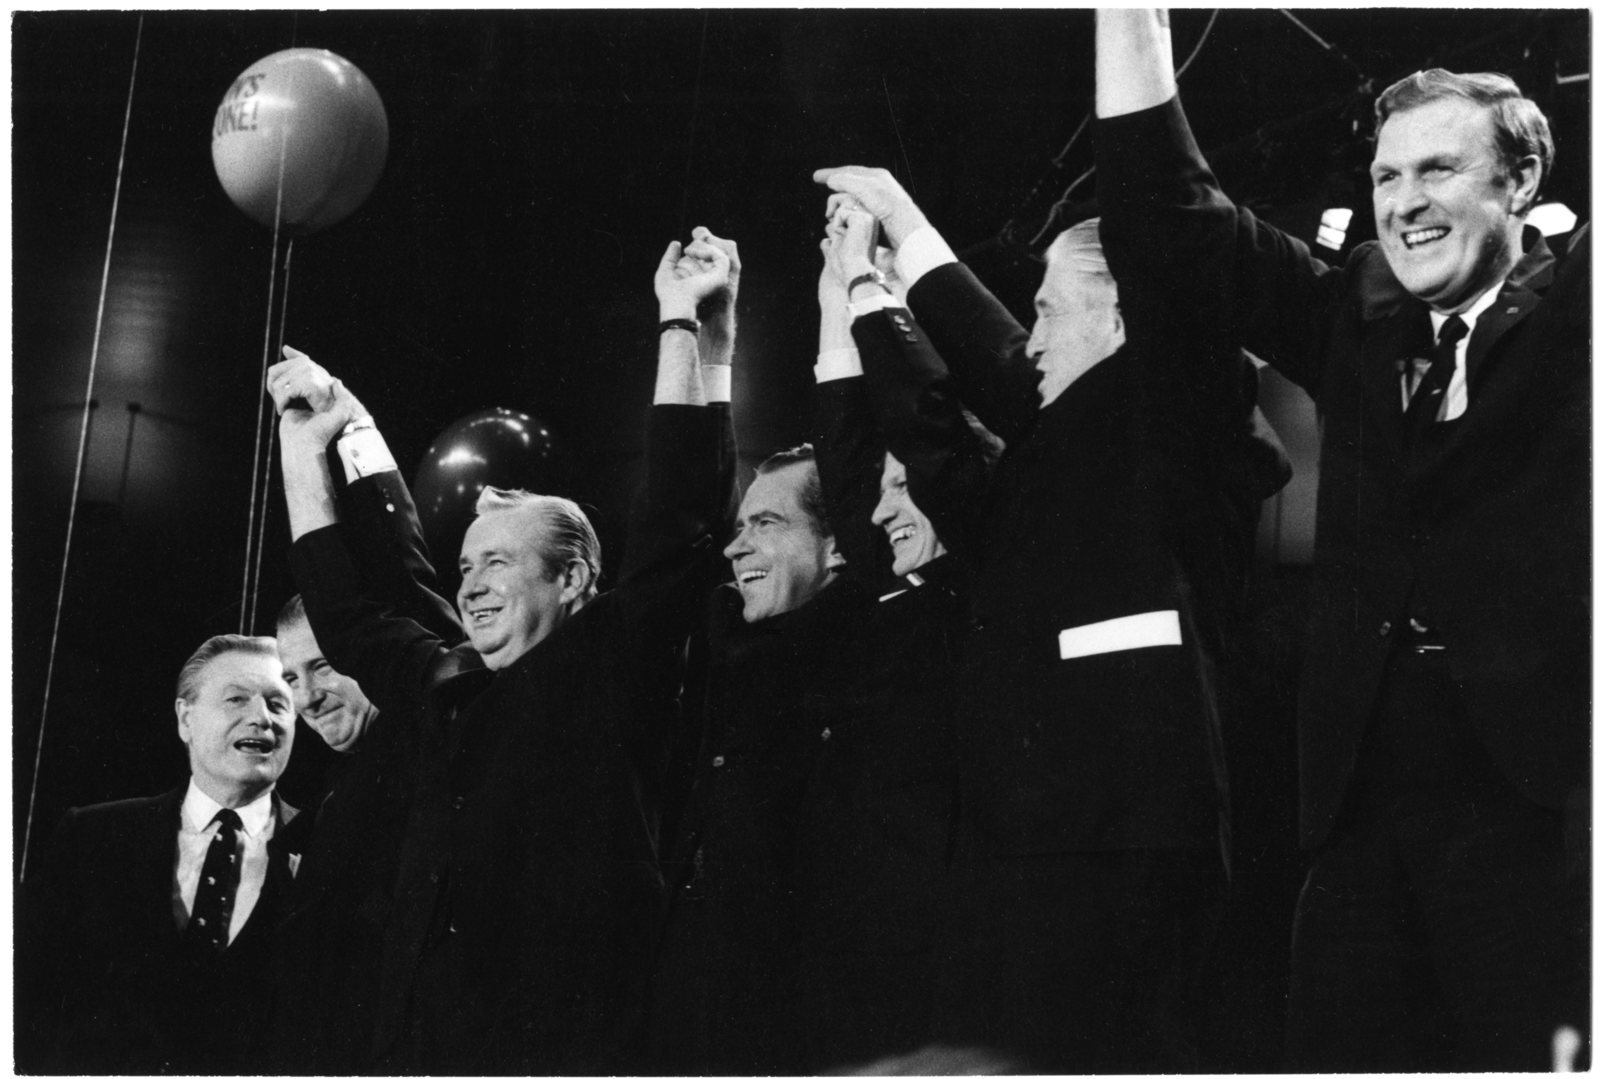 """Nelson Rockefeller, Spiro Agnew, Richard Nixon, and George Romney clasp hands in the air. A balloon reading """"Nixon's the One"""" is visible"""